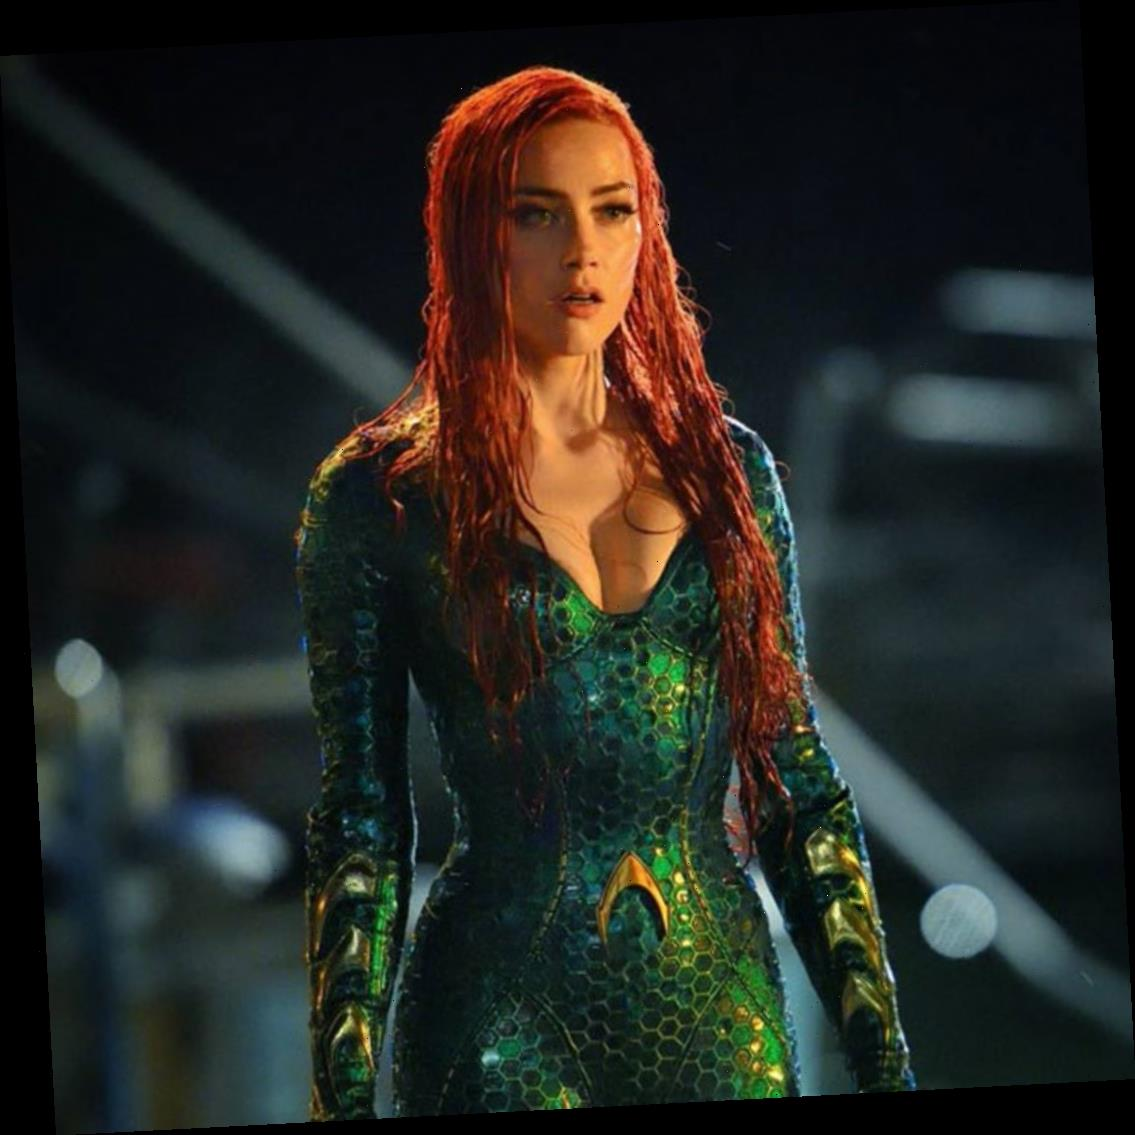 Amber Heard Shuts Down Rumors She's Not Returning for Aquaman 2